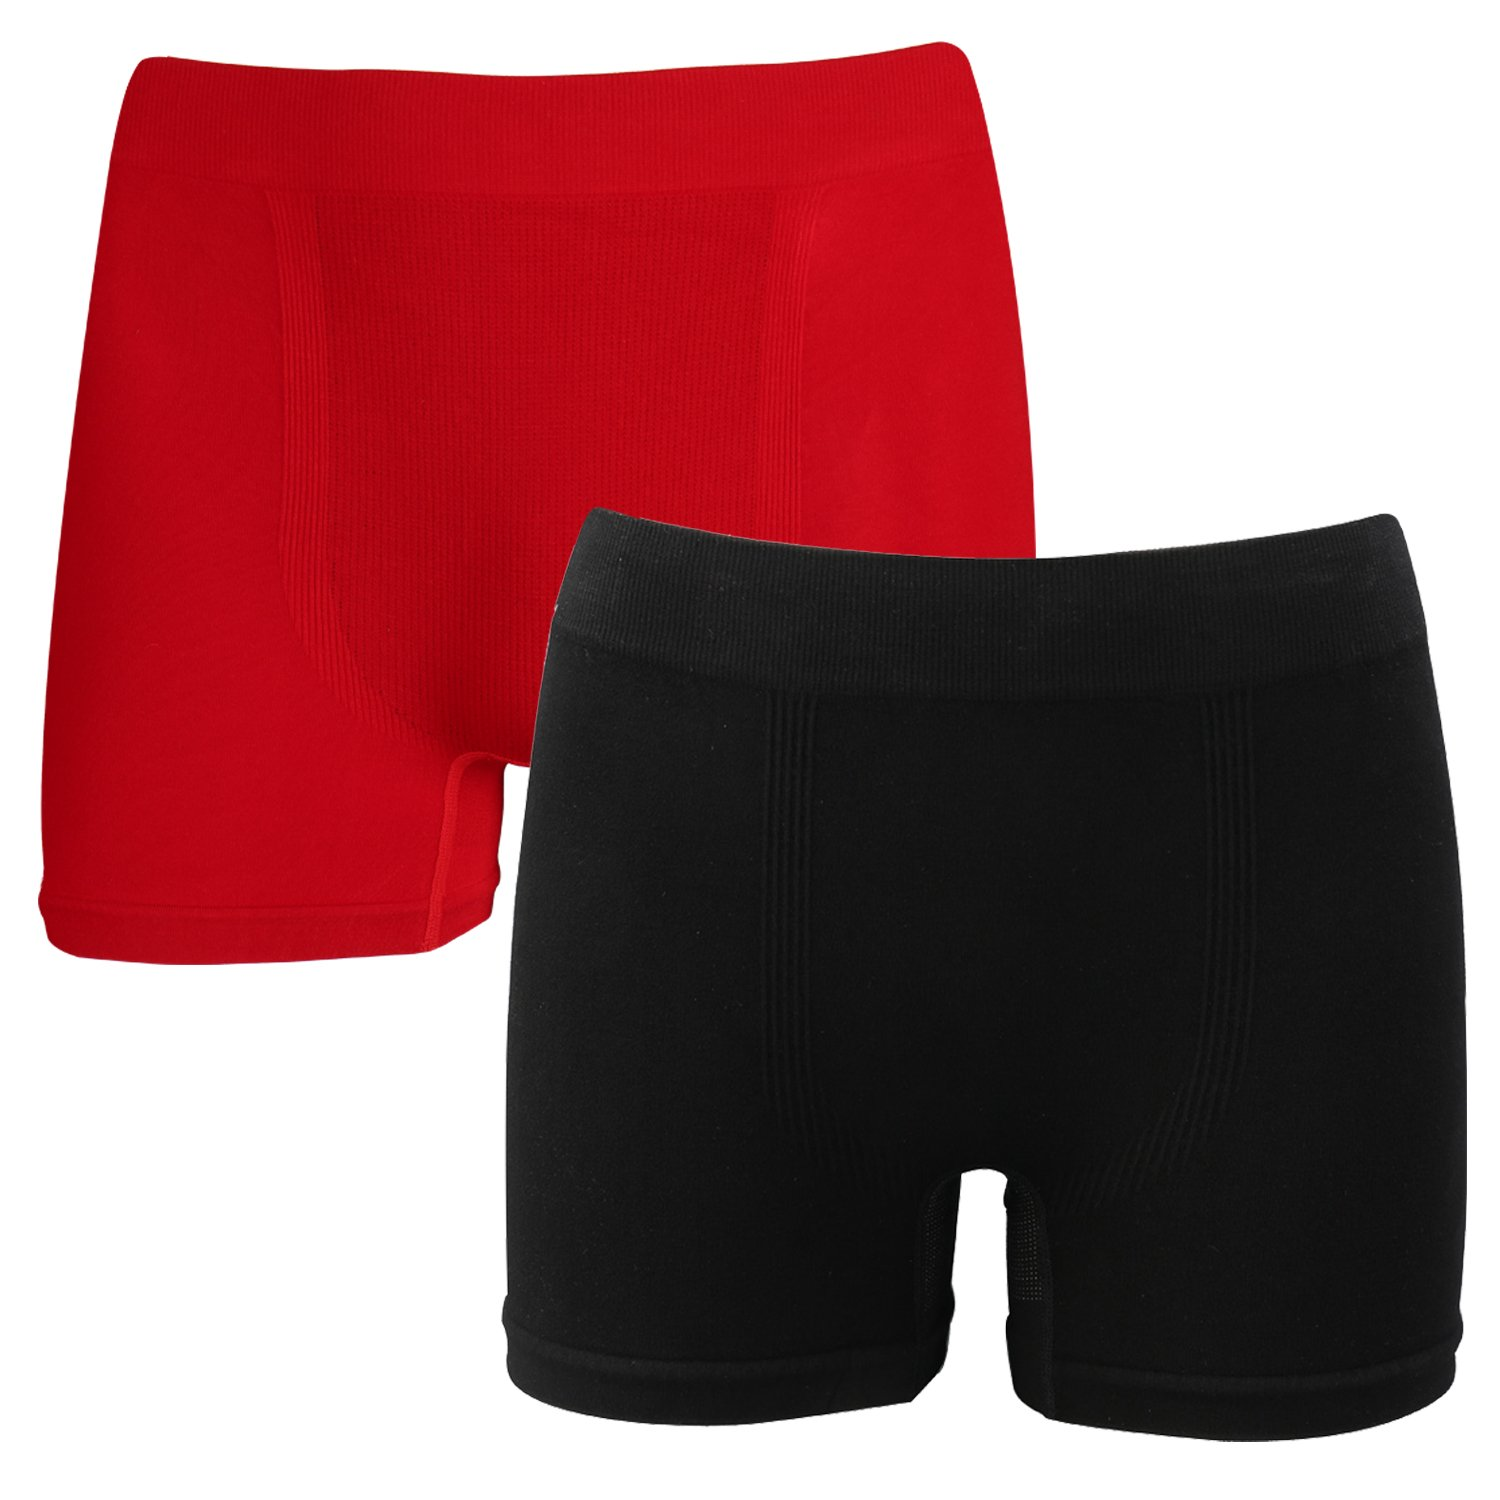 J/&Q Boxer Shorts Pack Mens Underwear Bamboo /& Cooper Seamless Boxers